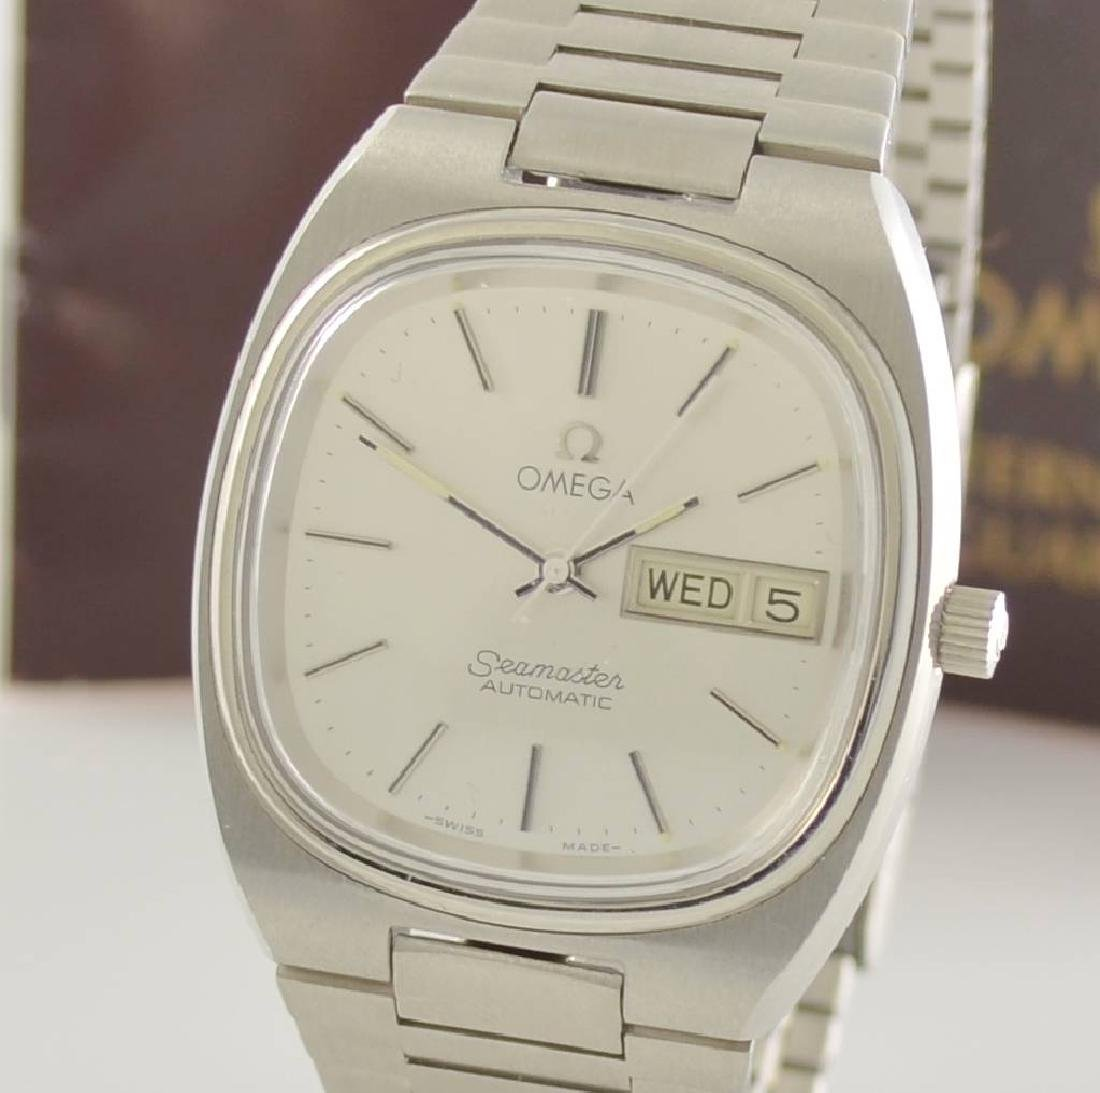 OMEGA Seamaster stainless steel gents wristwatch - 5